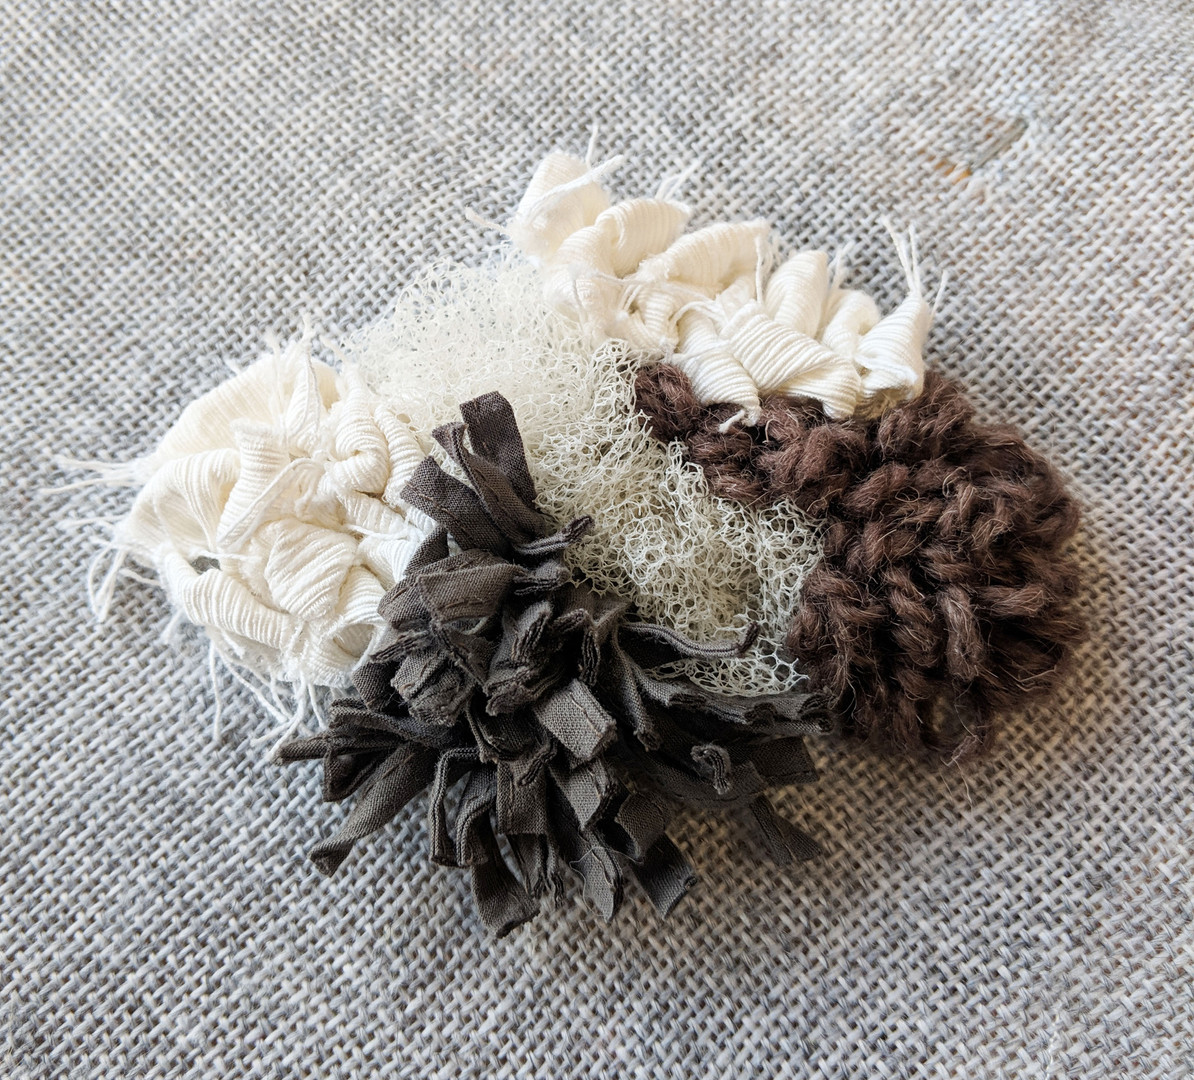 Many different types of materials and fabrics can be used to rag rug, combining different types creates interesting shapes and textures.